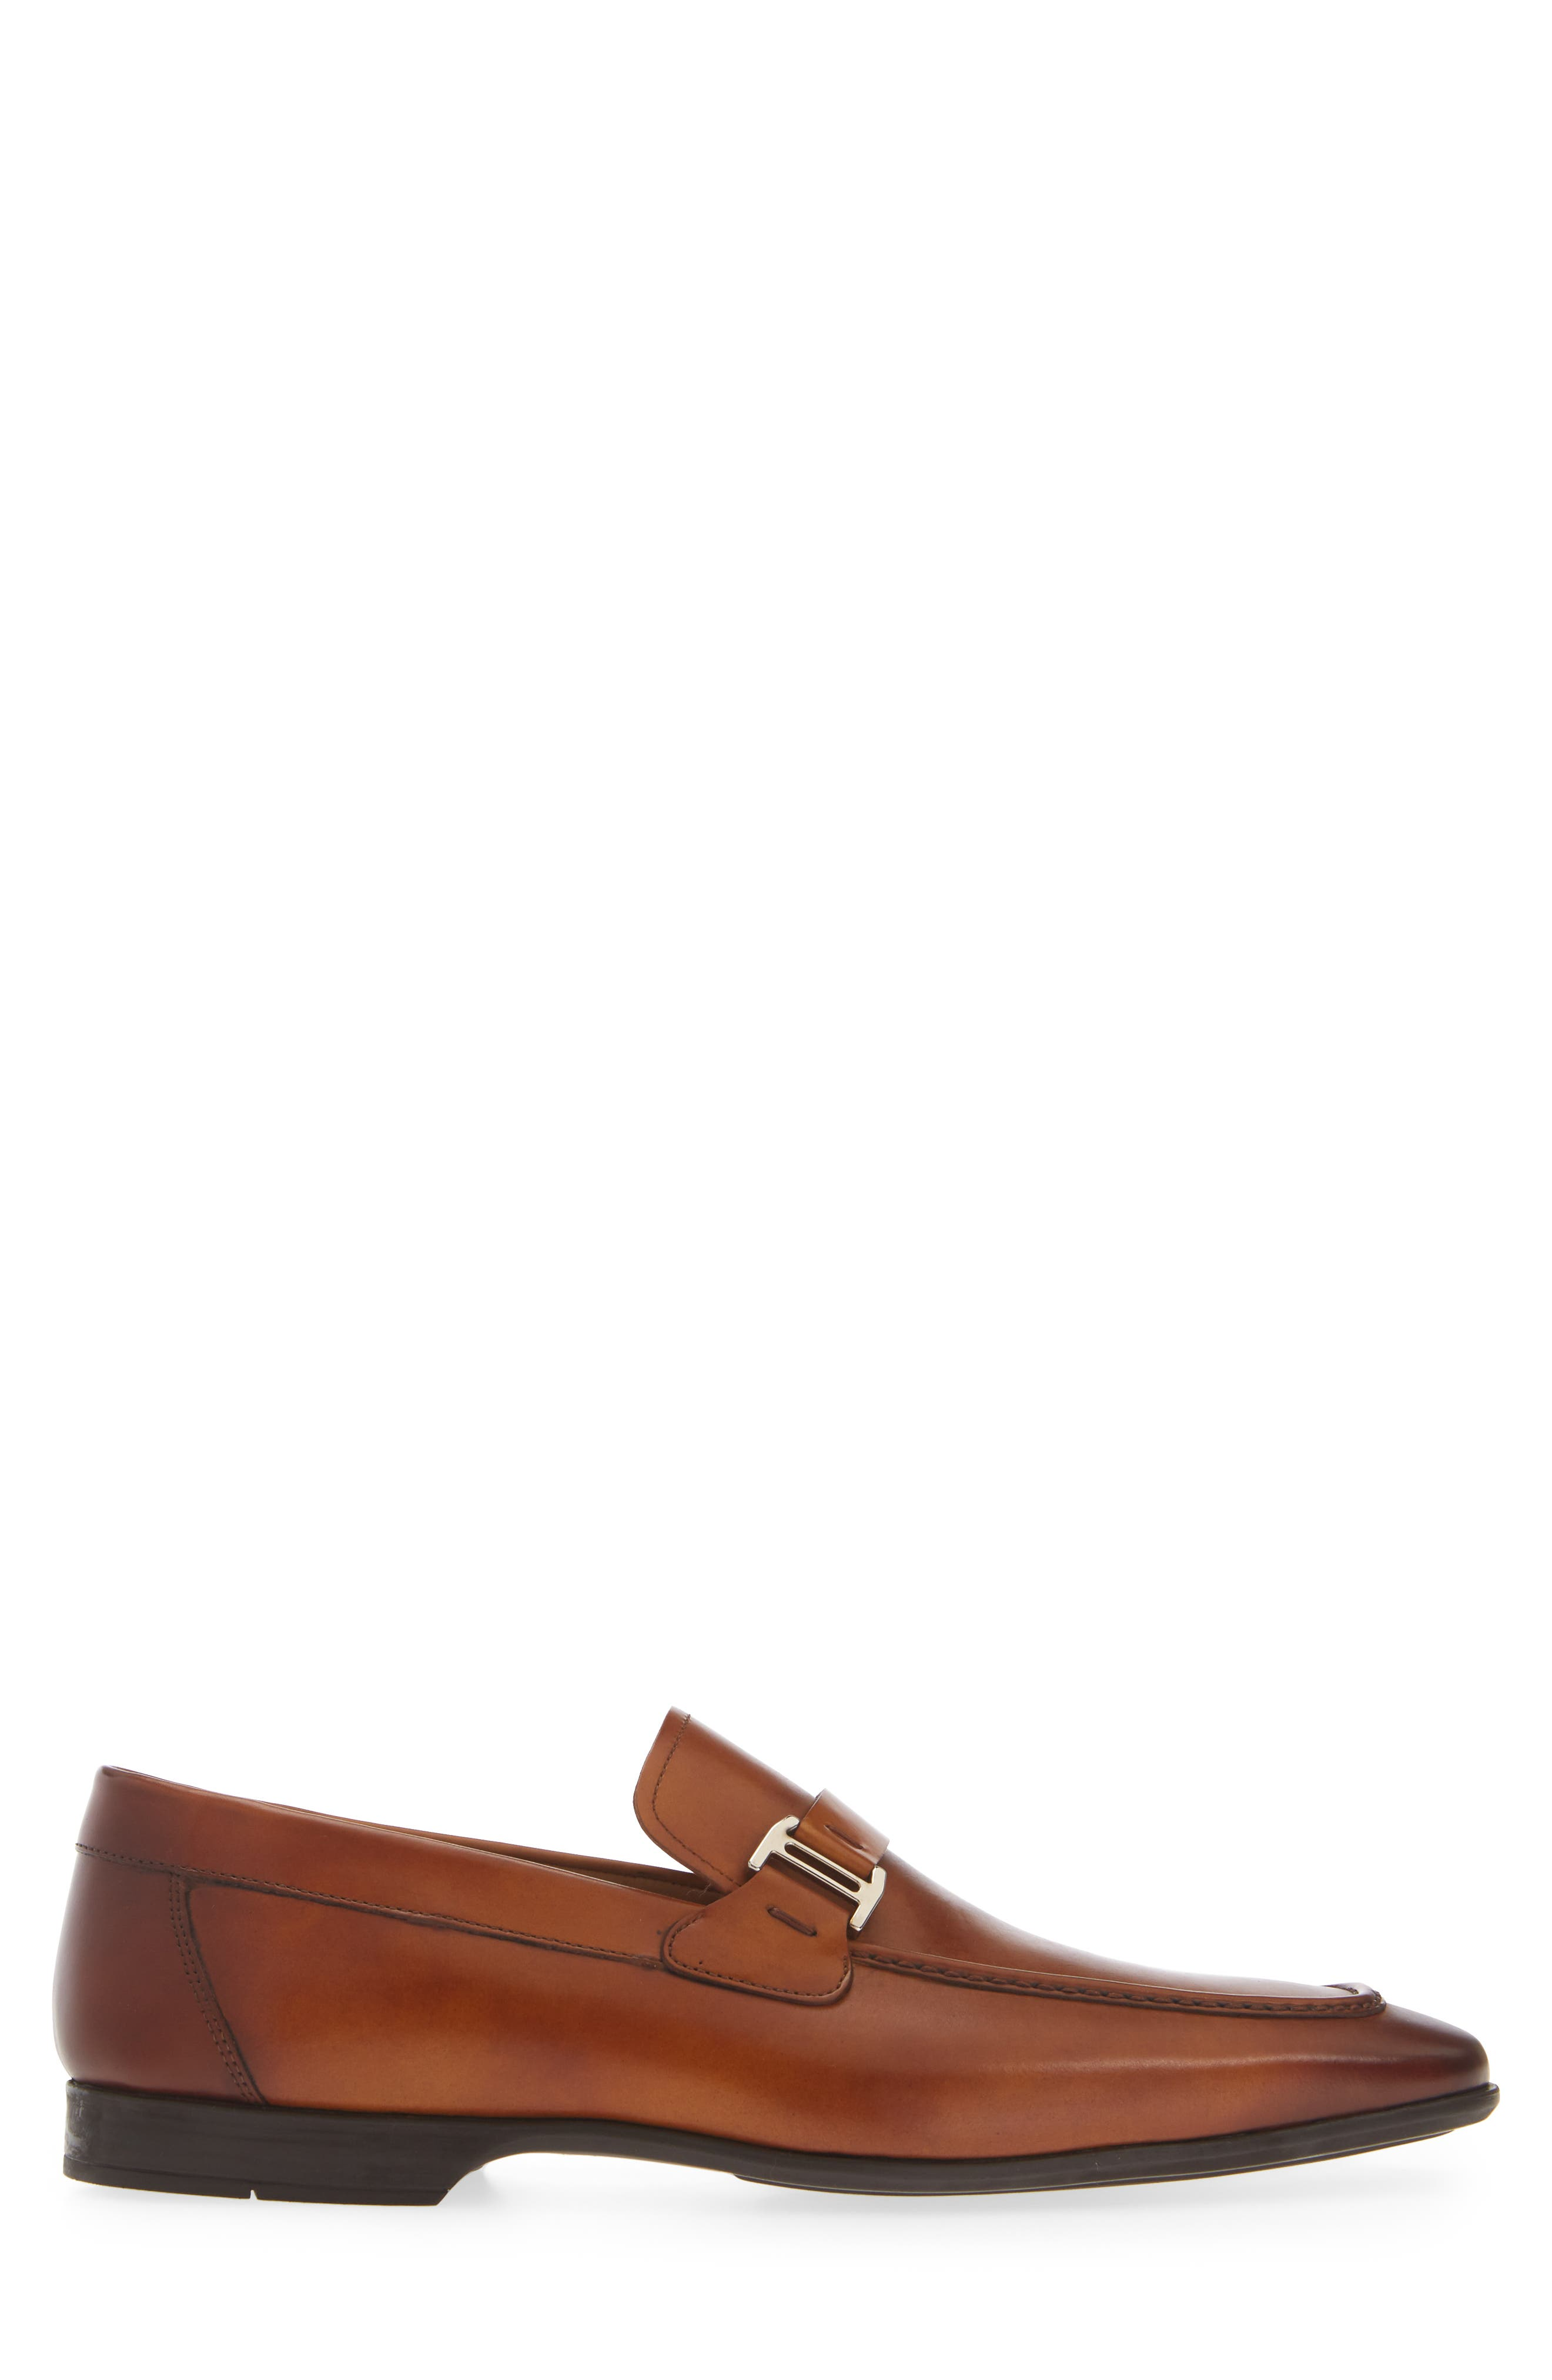 'Lino' Loafer,                             Alternate thumbnail 3, color,                             BROWN LEATHER